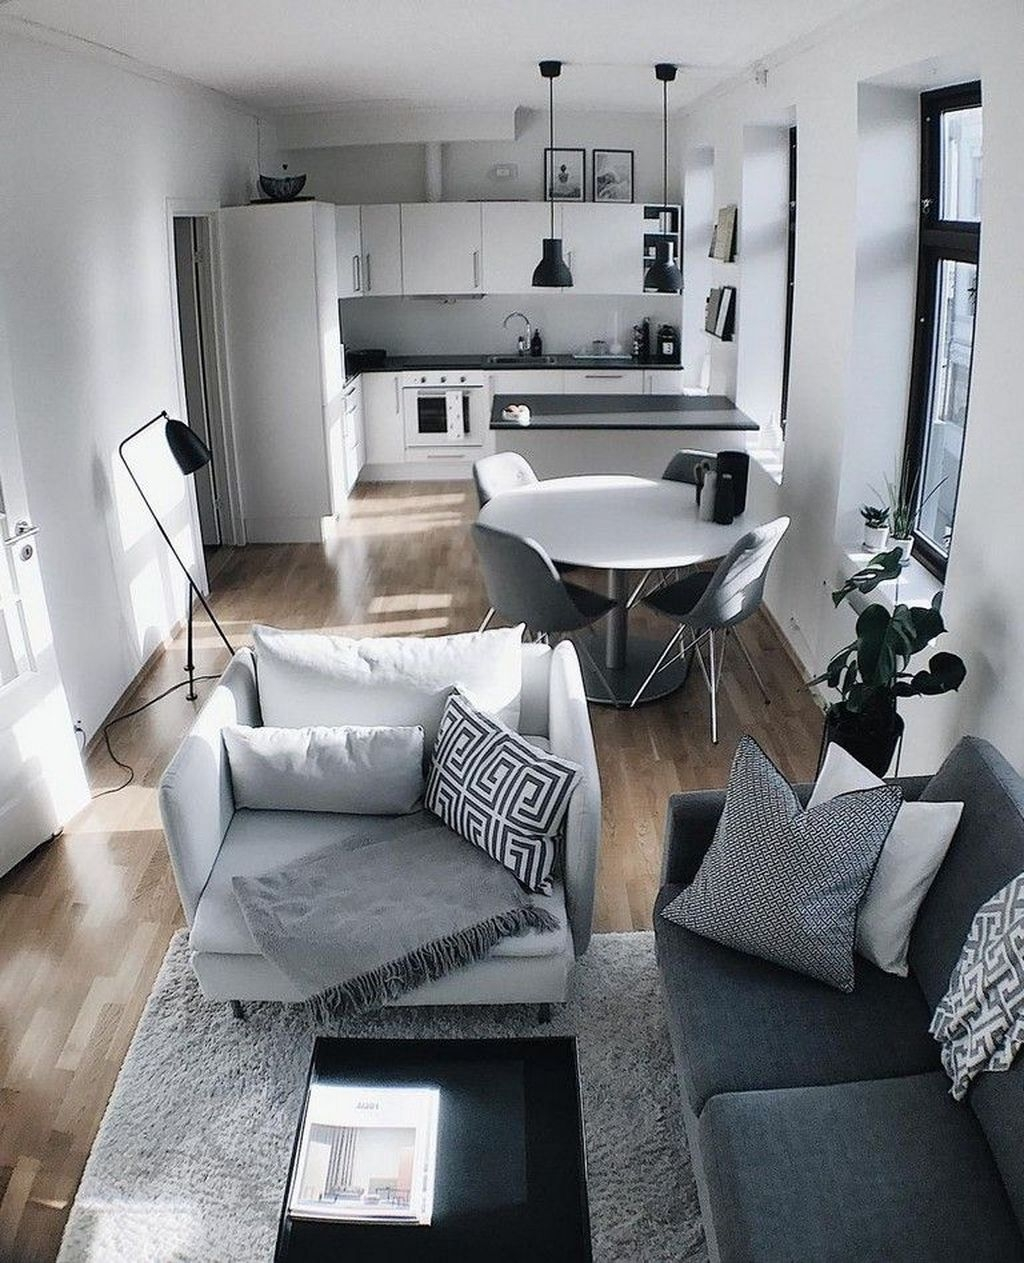 Unique Apartment Décor Ideas You Will Want To Keep02